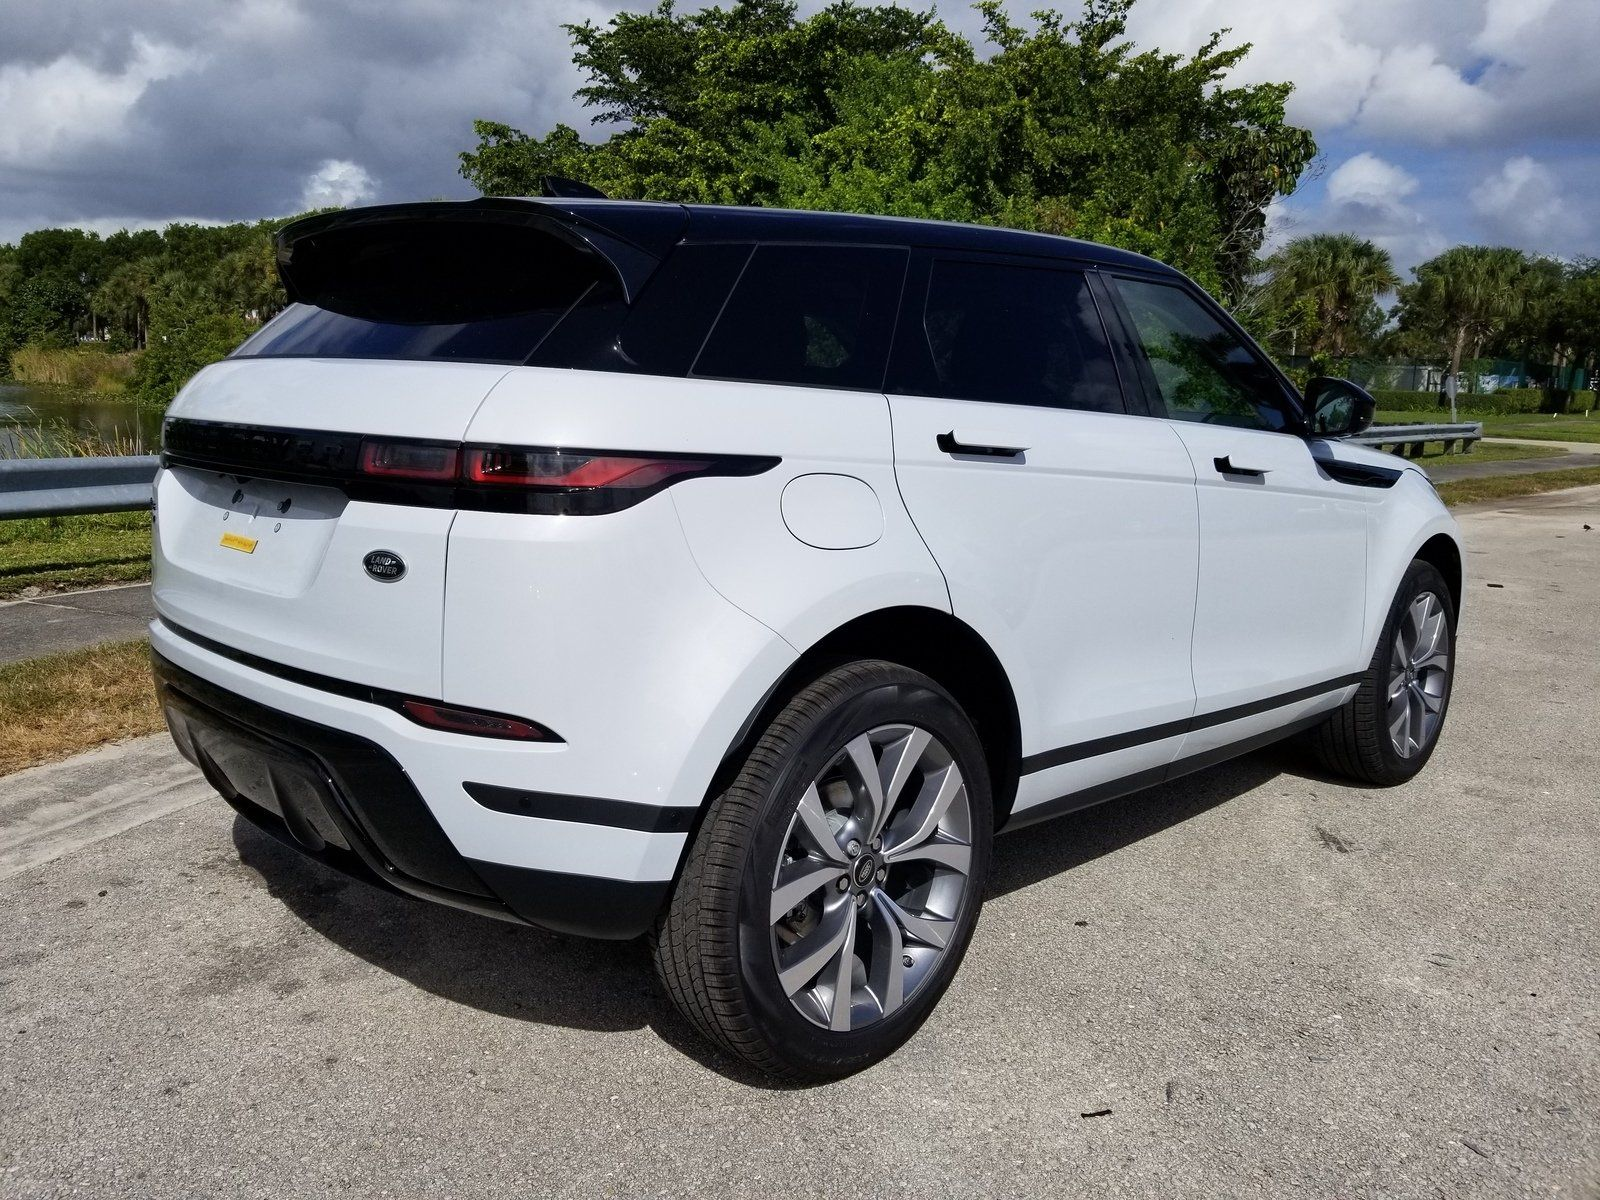 Land Rover SUVs for Sale in West Palm Beach in 2020 Land